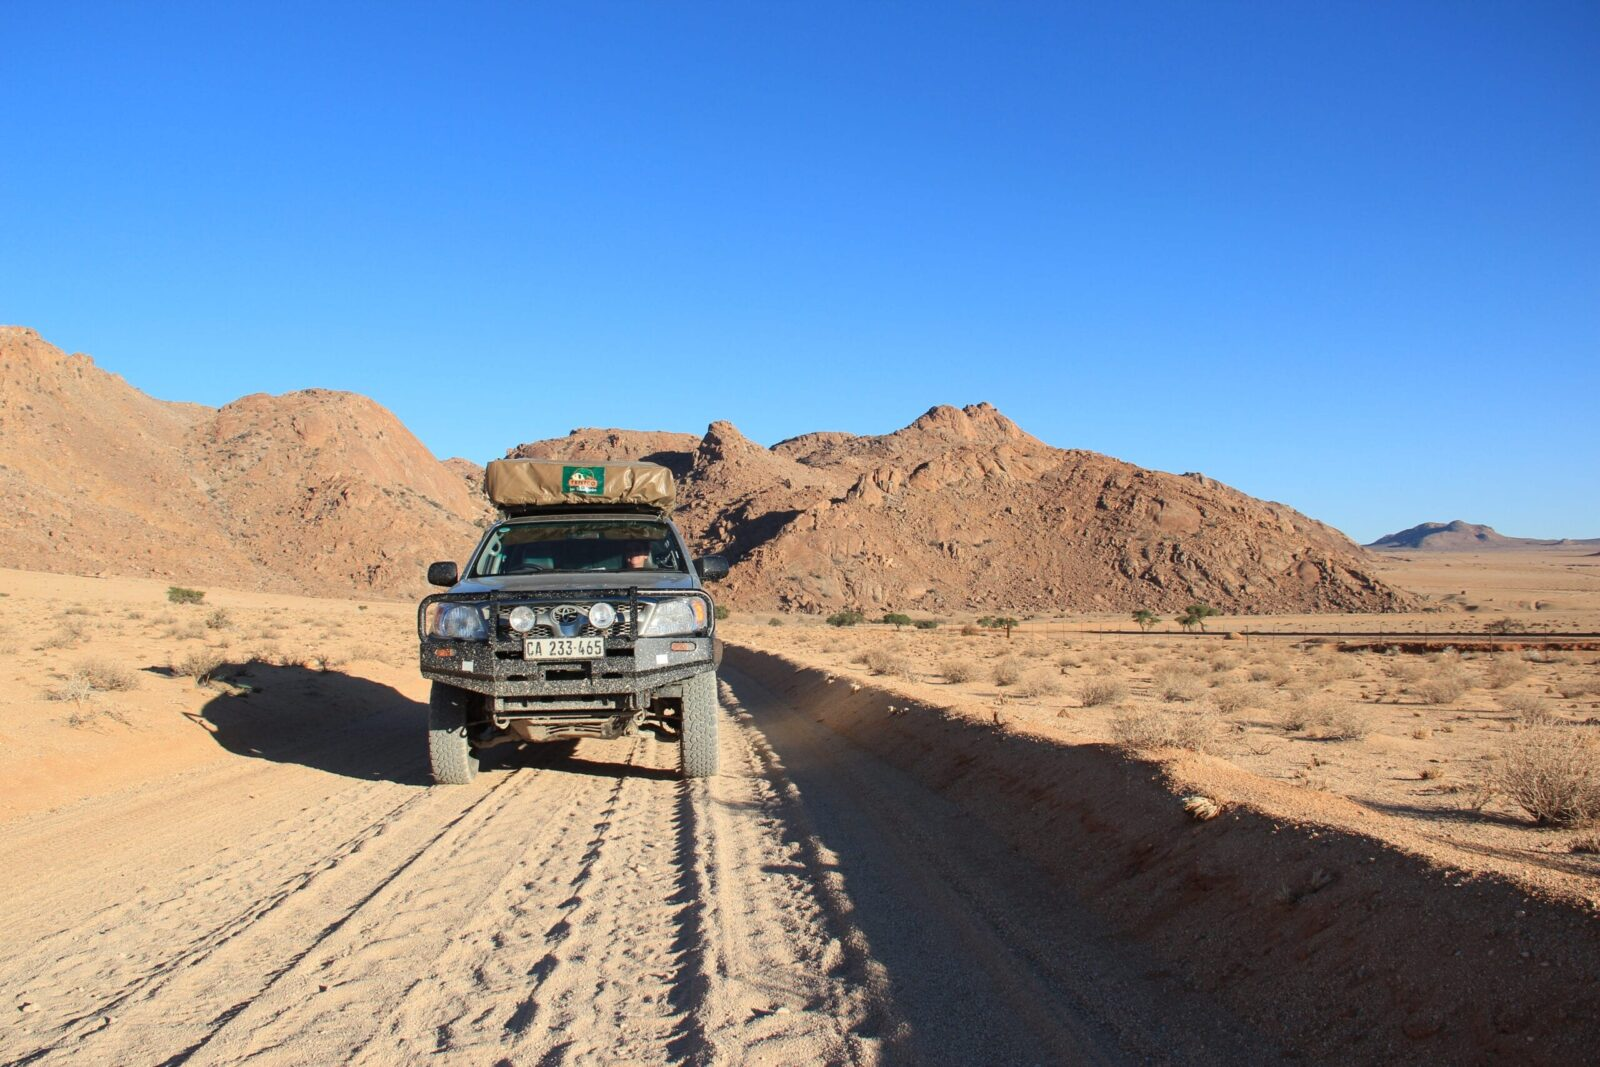 You Crave 4X4 Camper Tours  Experience the wild bush in your 4x4 home on wheels. Go where others can't go. Relish 4x4 camper tours in the full-service or self-organised, camper-only option. Explore 4x4 campers this way.